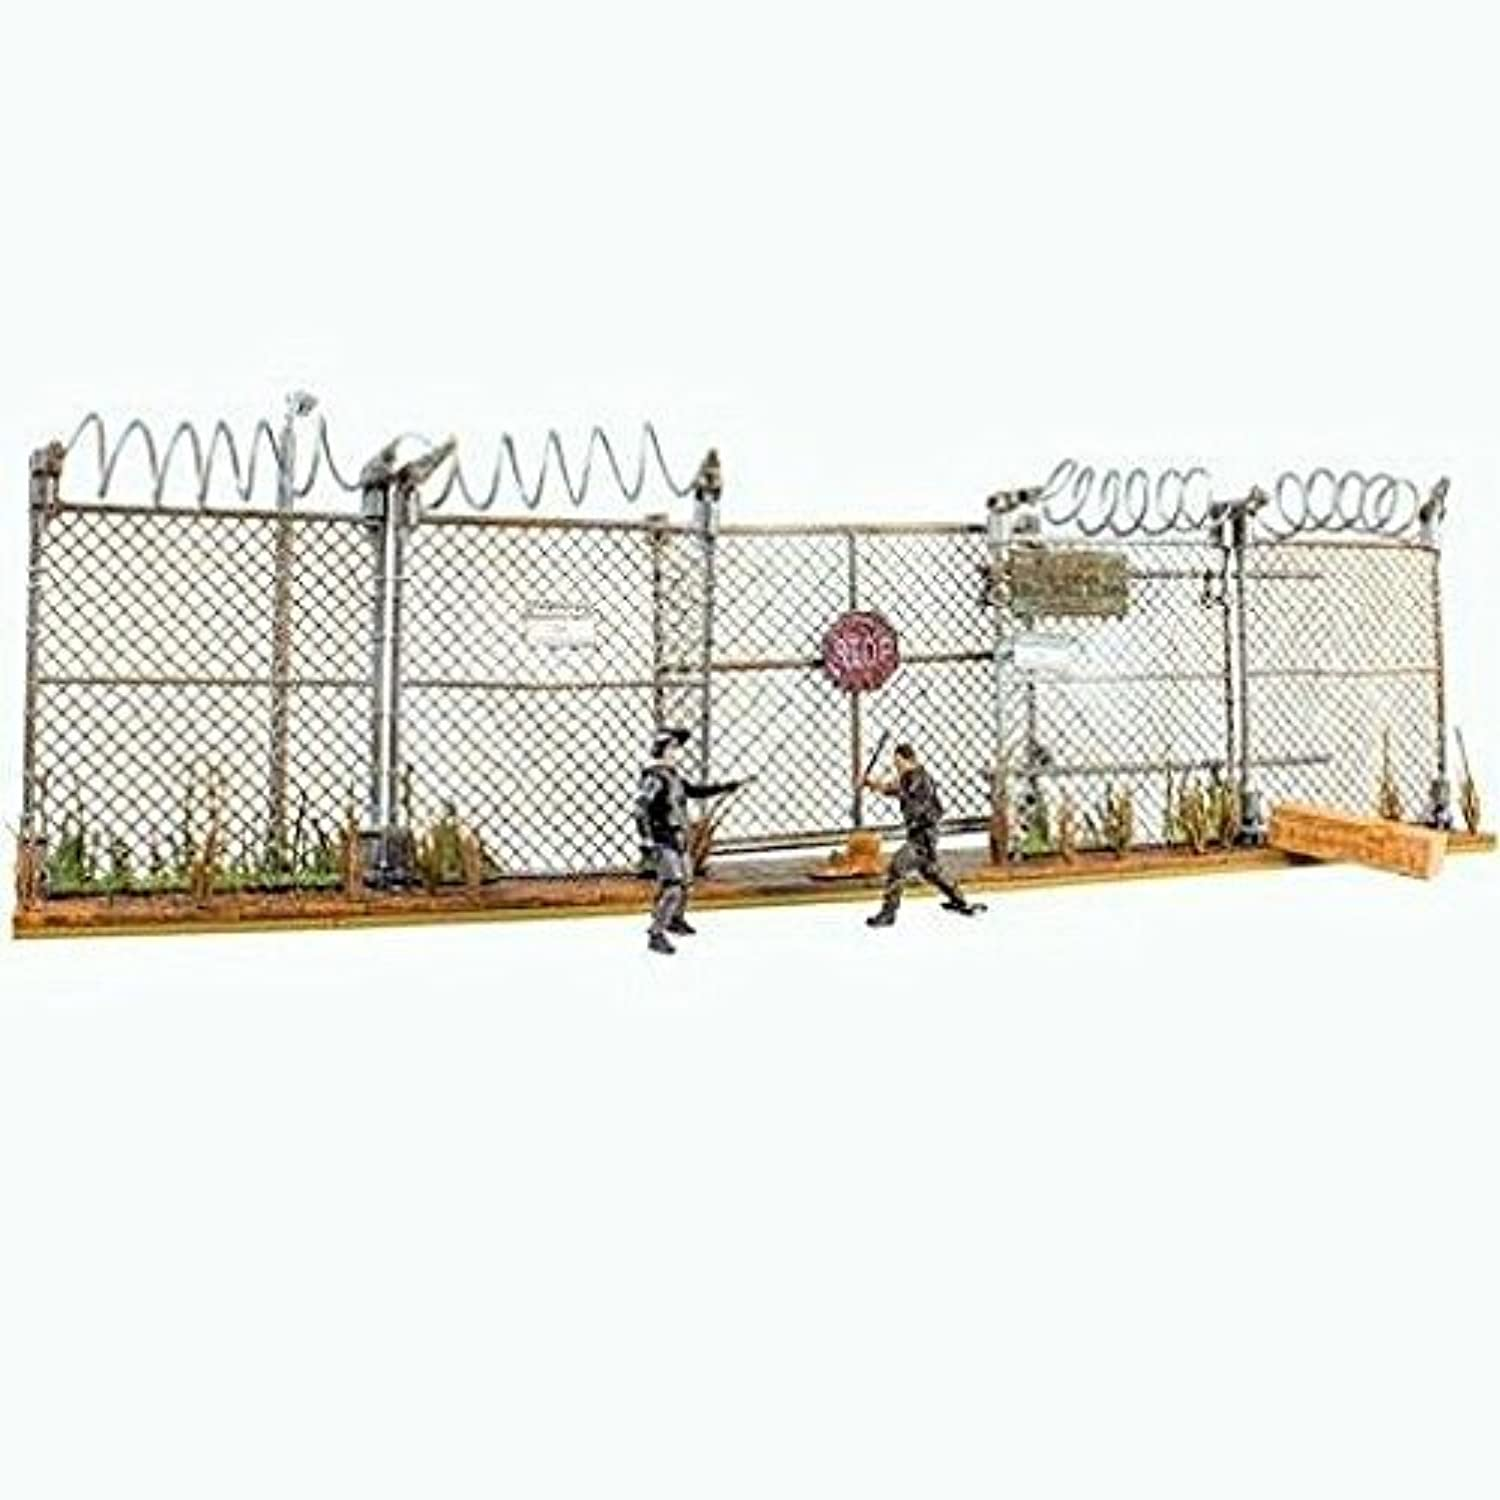 McFarlane Toys The Walking Dead AMC TV Series Prison Gate & Fence Building Set  14556 by Unknown